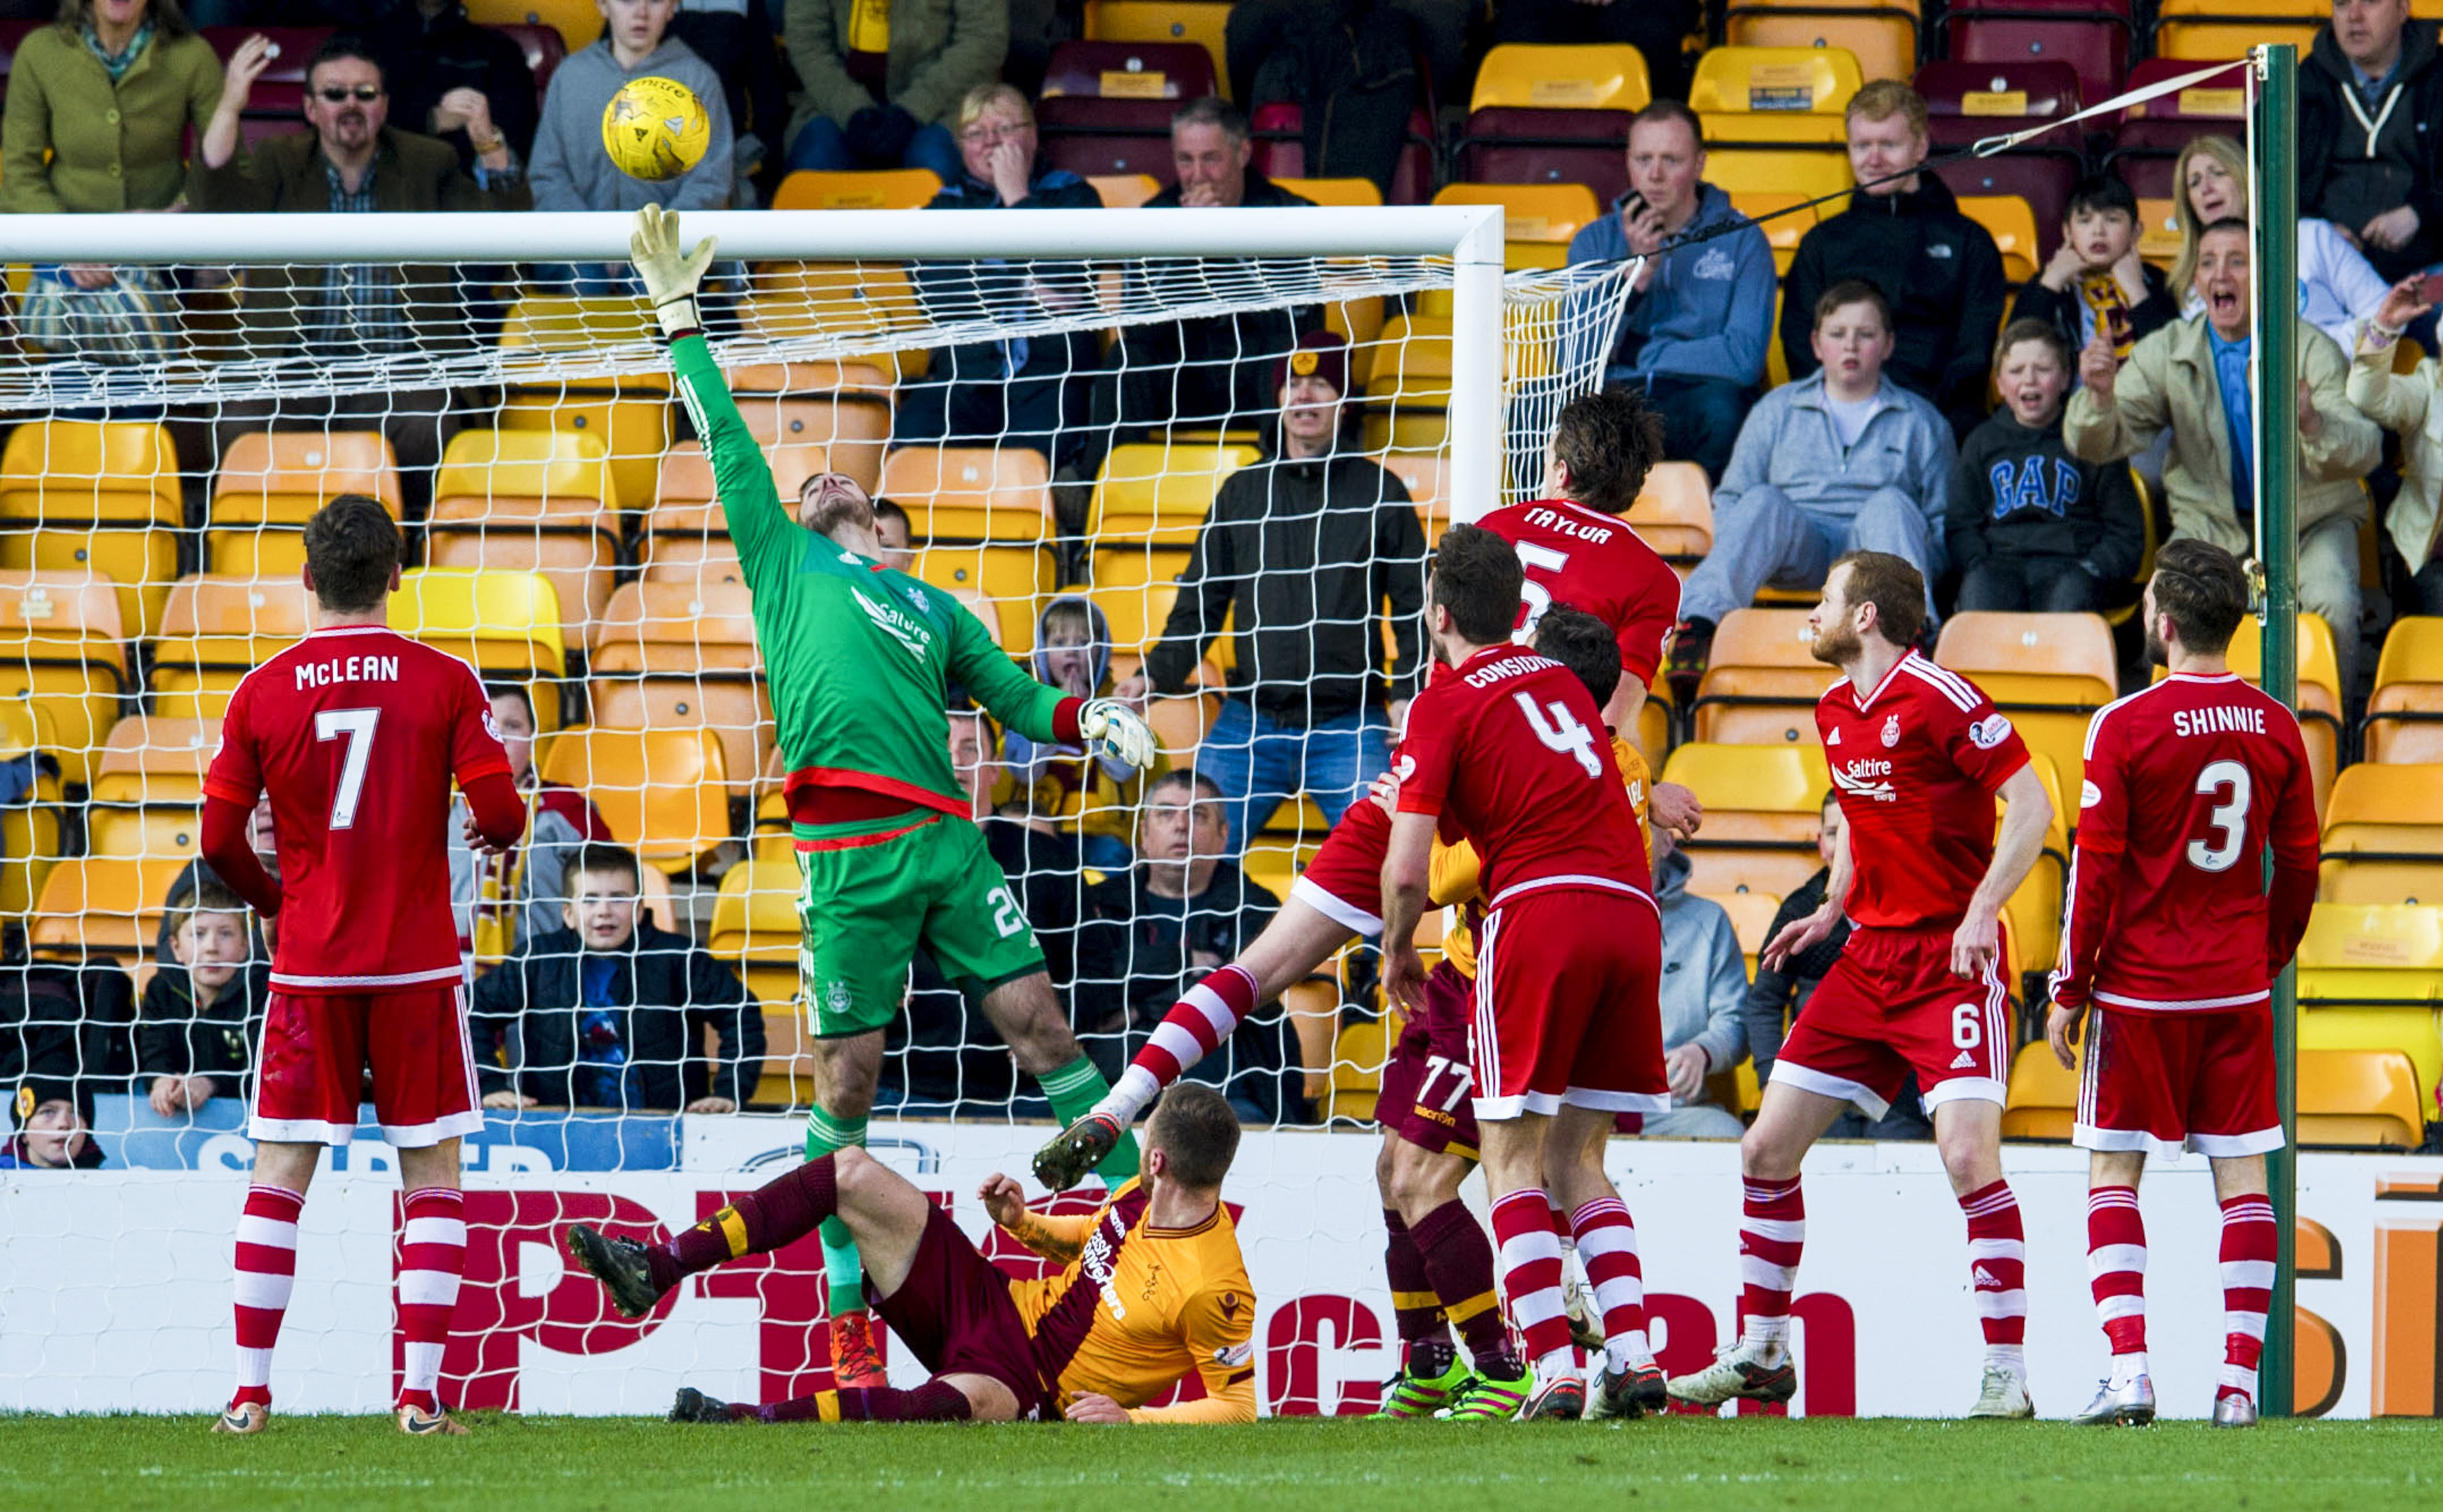 Motherwell's Scott McDonald scores an equaliser for his side